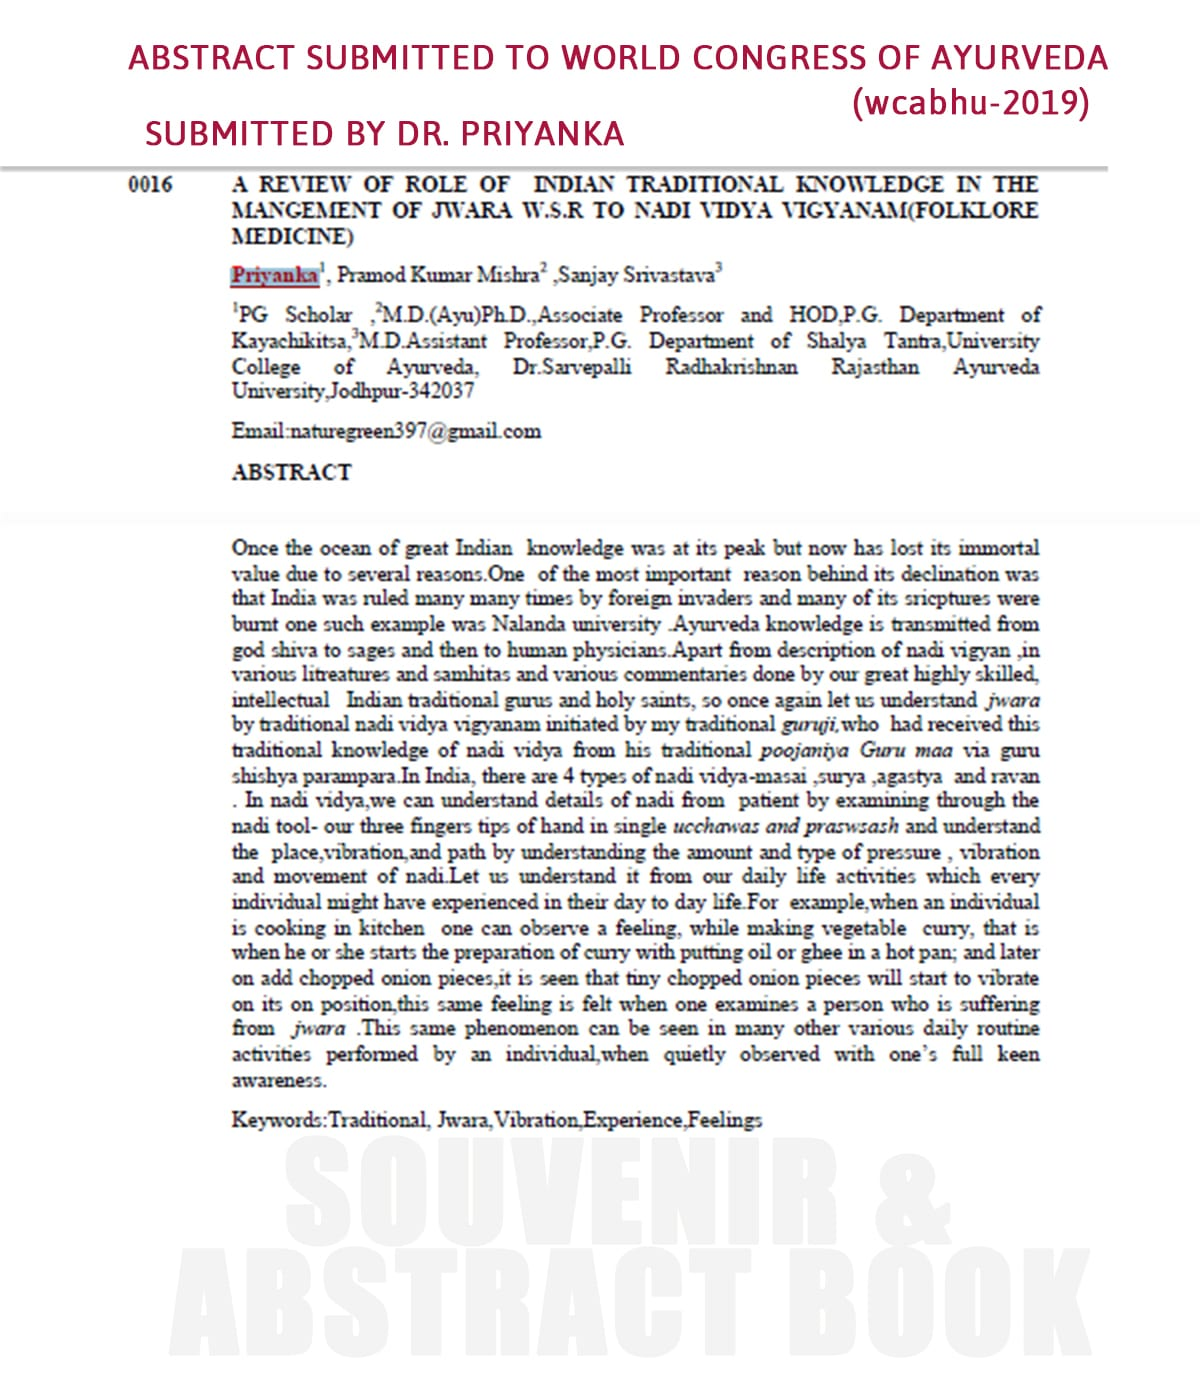 Dr Priyanka Abstract on Jwara AMCT